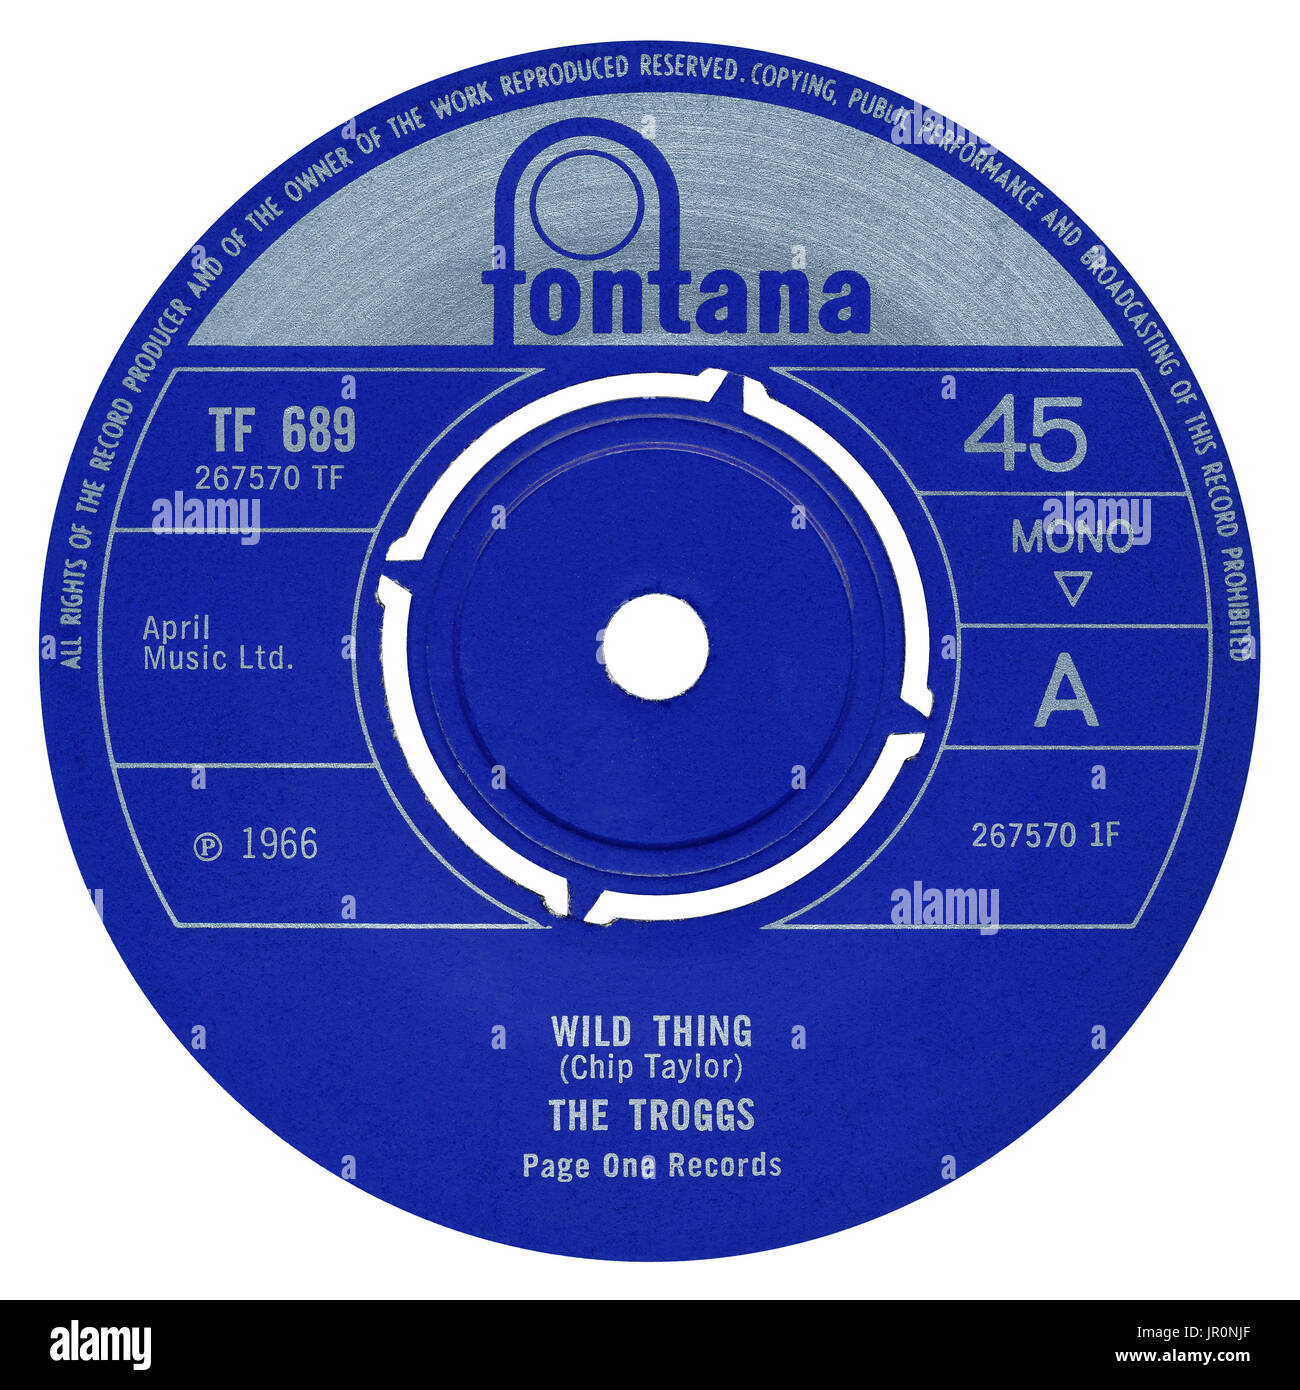 """45 RPM 7"""" UK record label of Wild Thing by The Troggs on the Fontana label from 1966. Stock Photo"""